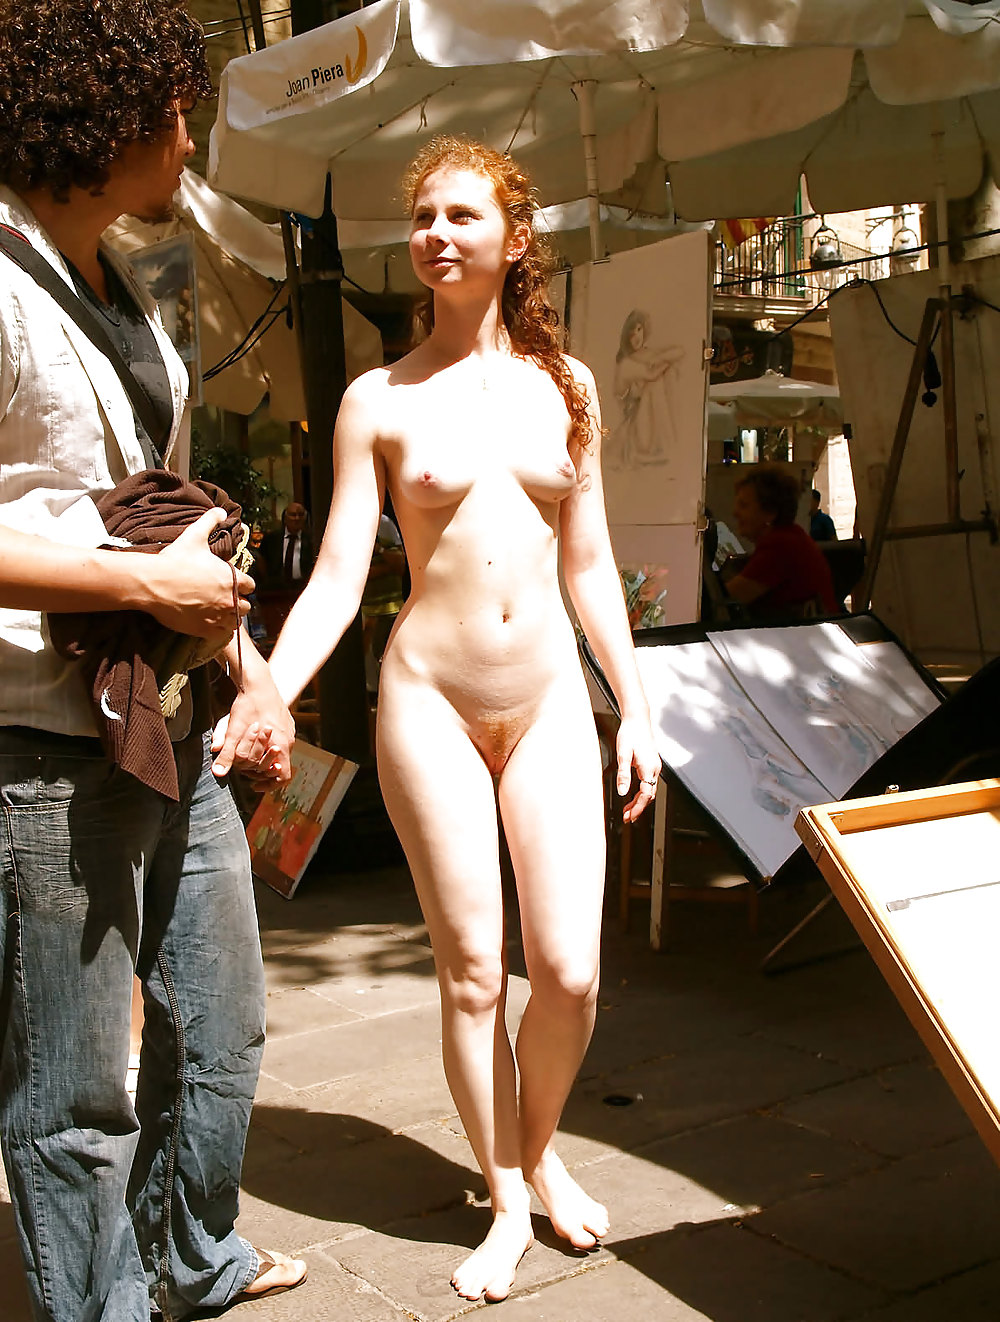 Forecaster in nude